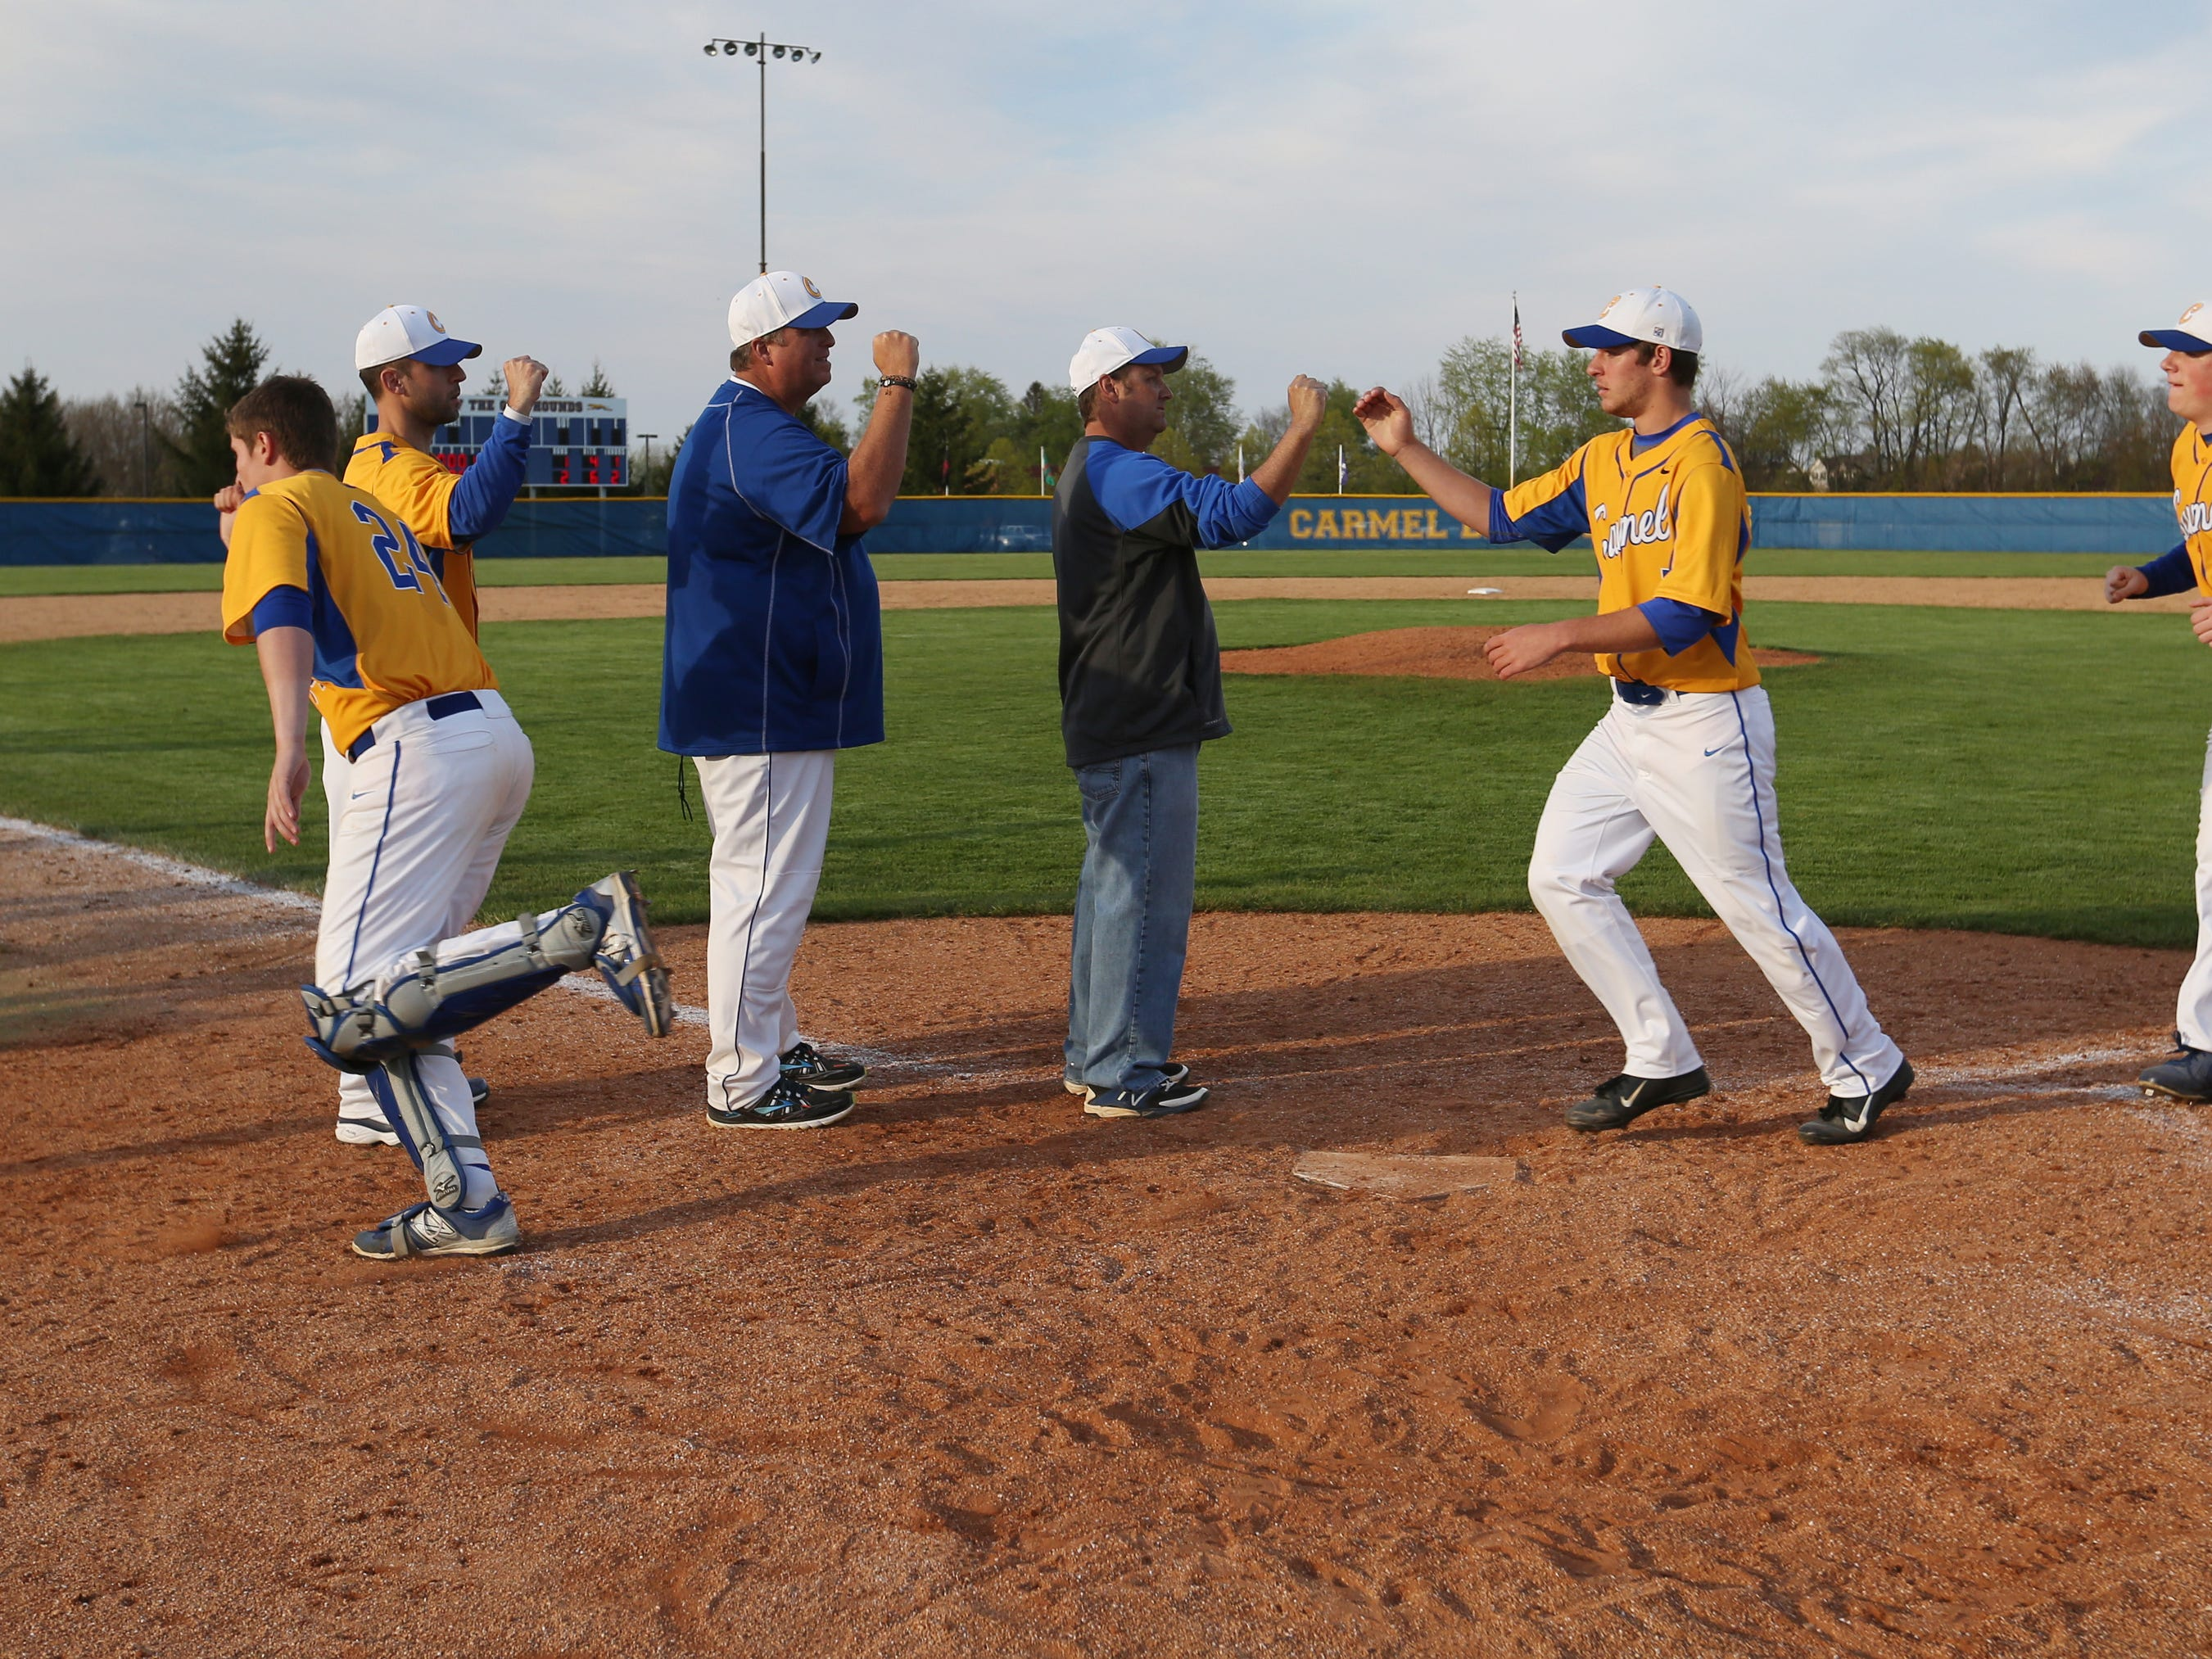 Carmel players celebrate their 2-1 victory over Lawrence North, as Carmel pitcher Tommy Sommer held the Wildcats to four hits and gave Lawrence North its first loss of the season, at Hartman Field in Carmel on Wednesday, April 29, 2015. Lawrence North (14-1) took a 1-0 lead in the top of the fifth inning, but Carmel (7-7) came back to tie it in the bottom of the inning, then scored the winning run in the bottom of the 6th.